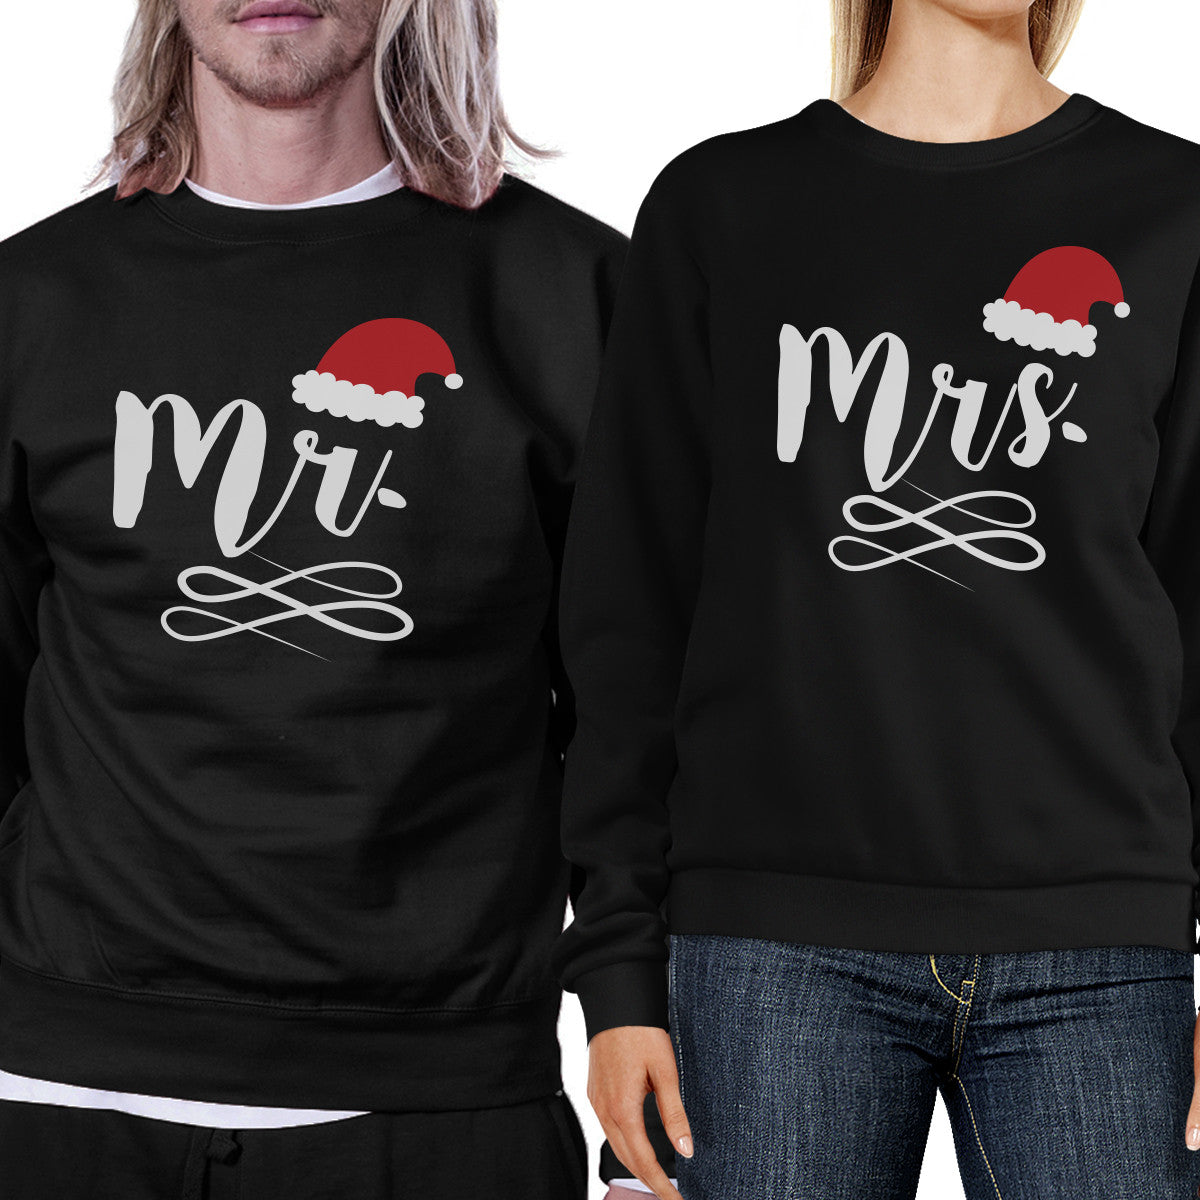 Mr And Mrs Christmas Couple Sweatshirts Holiday Gifts For Couples ...